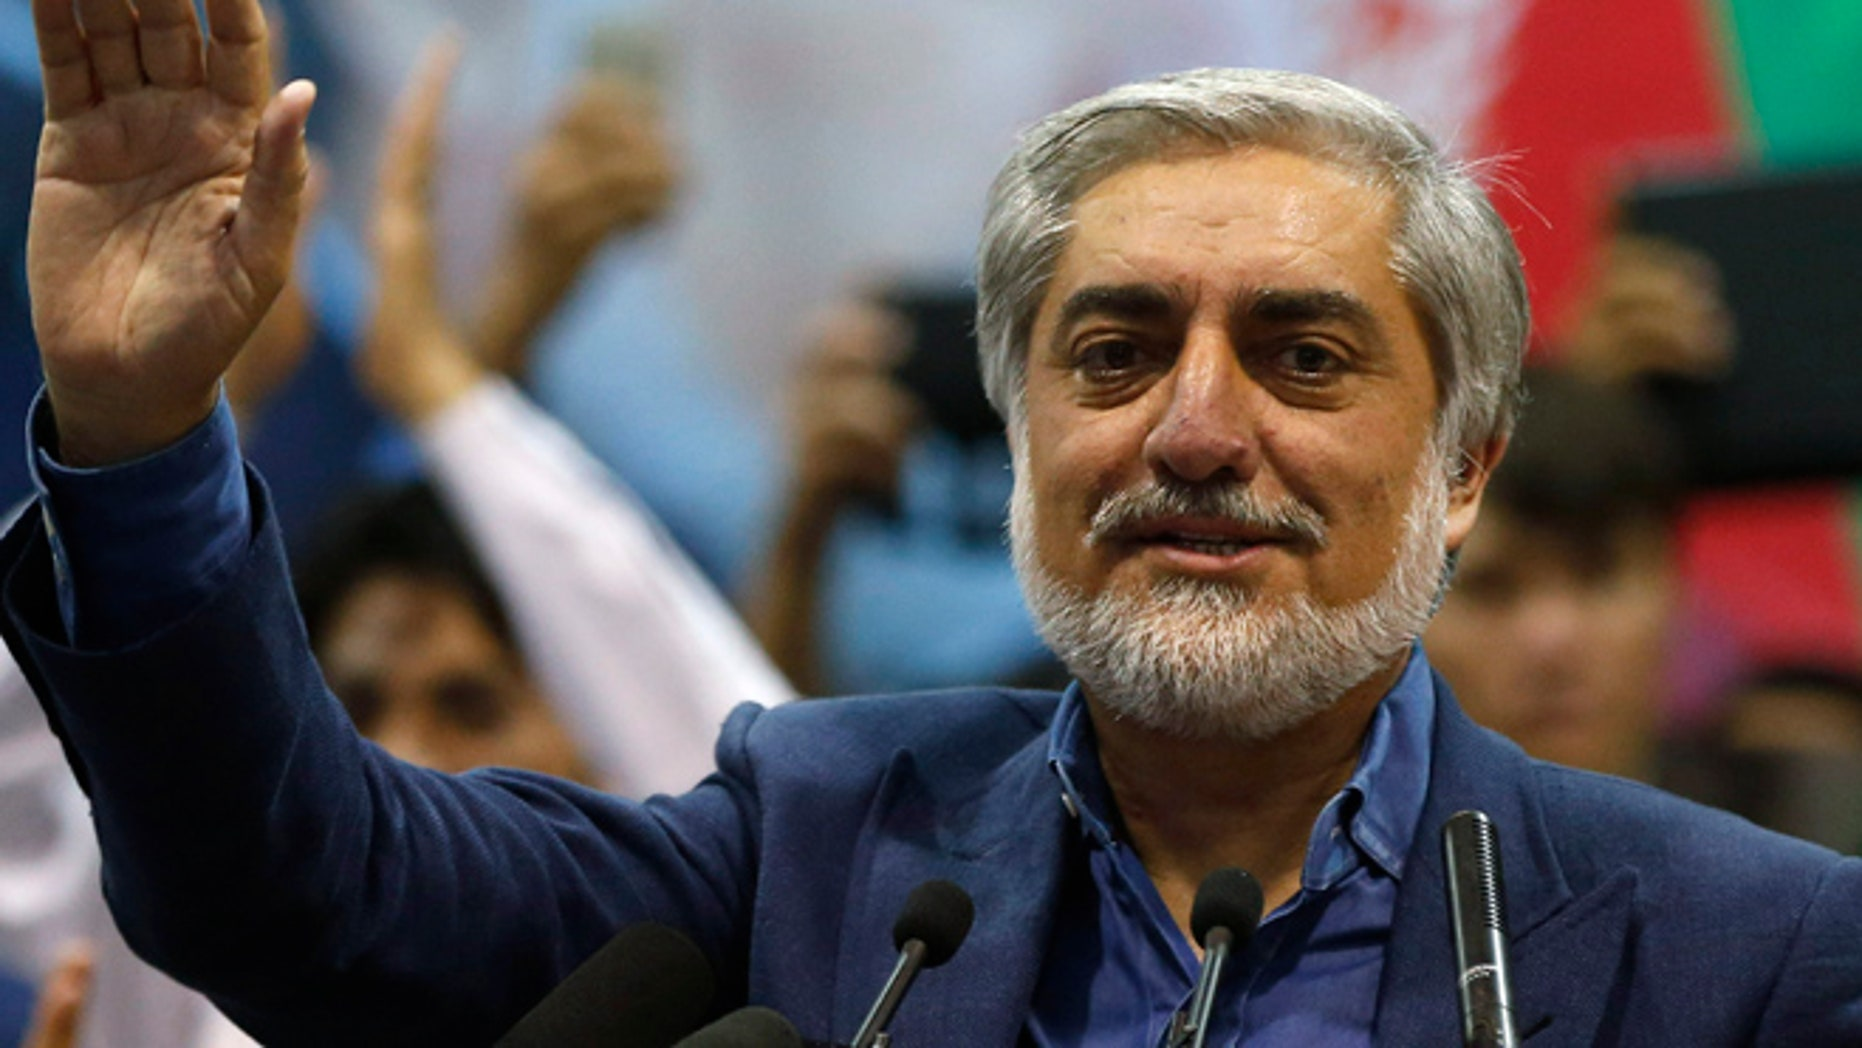 July 8: Afghan presidential candidate Abdullah Abdullah waves to his supporters during a gathering in Kabul. Abdullah told thousands of supporters on Tuesday he was the winner of last month's run-off election.